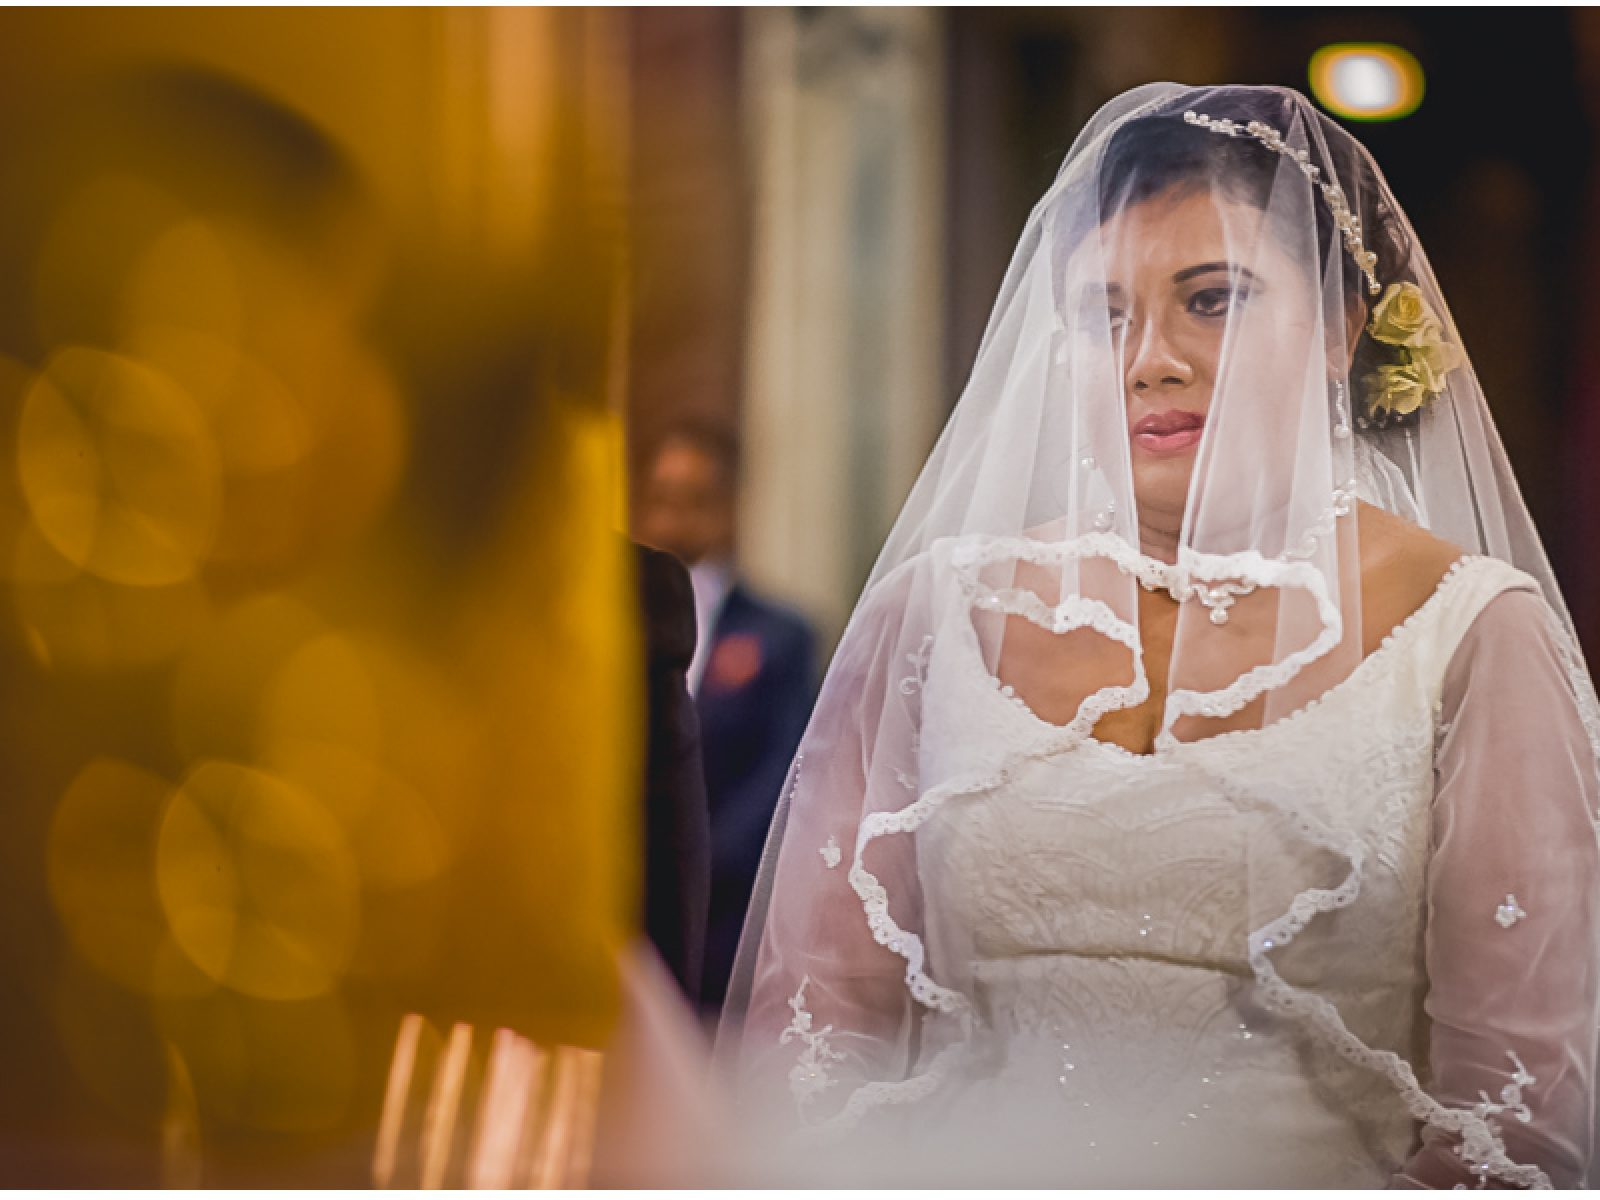 521 1600x1200 - Darshani and Anthony - wedding photographer in London